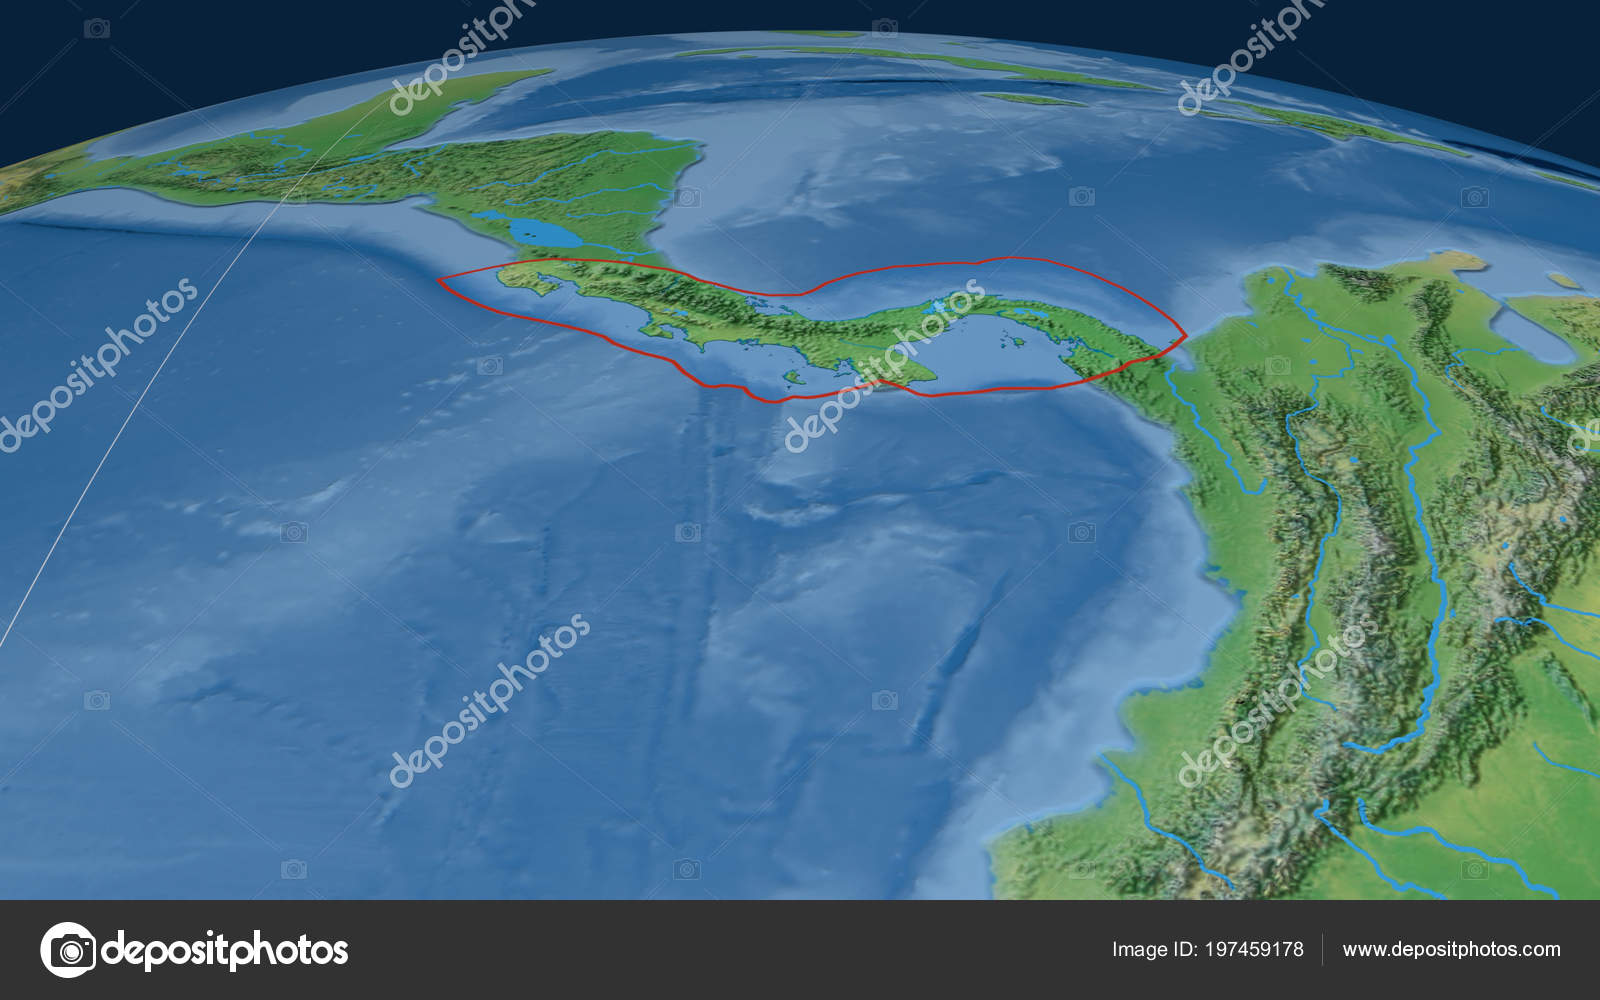 Topographic Map Of Panama.Panama Tectonic Plate Outlined Globe Natural Earth Topographic Map